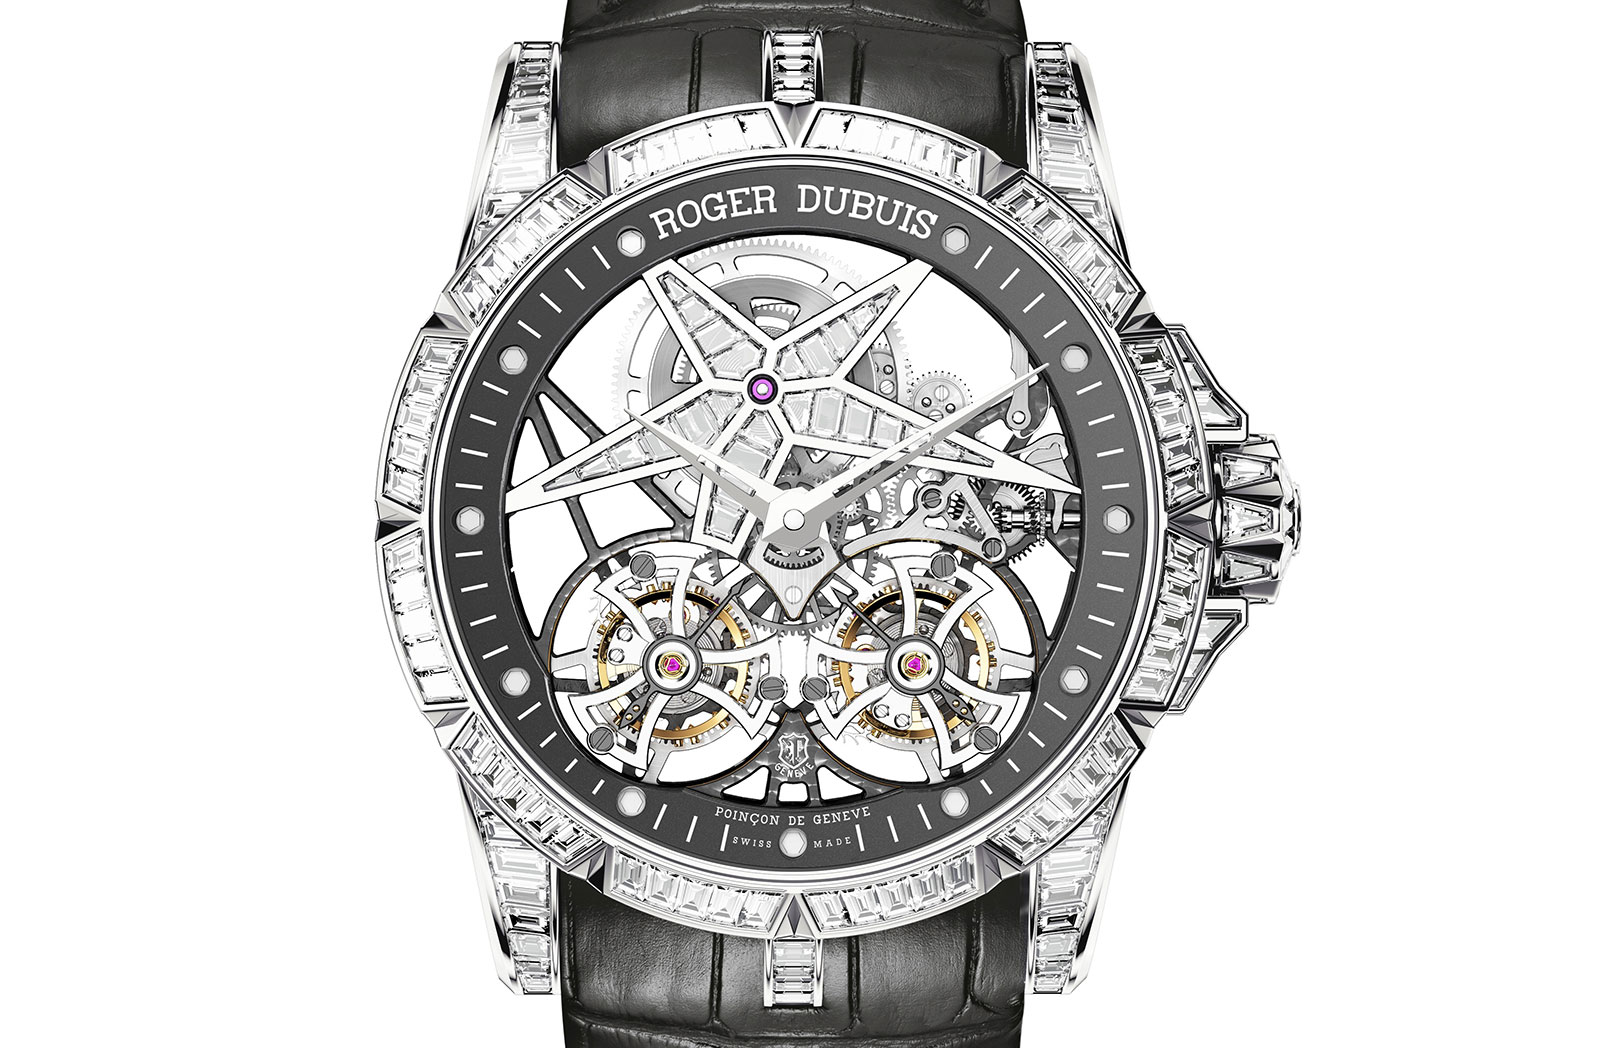 Roger star of infinity dubuis Double tourbillon watch